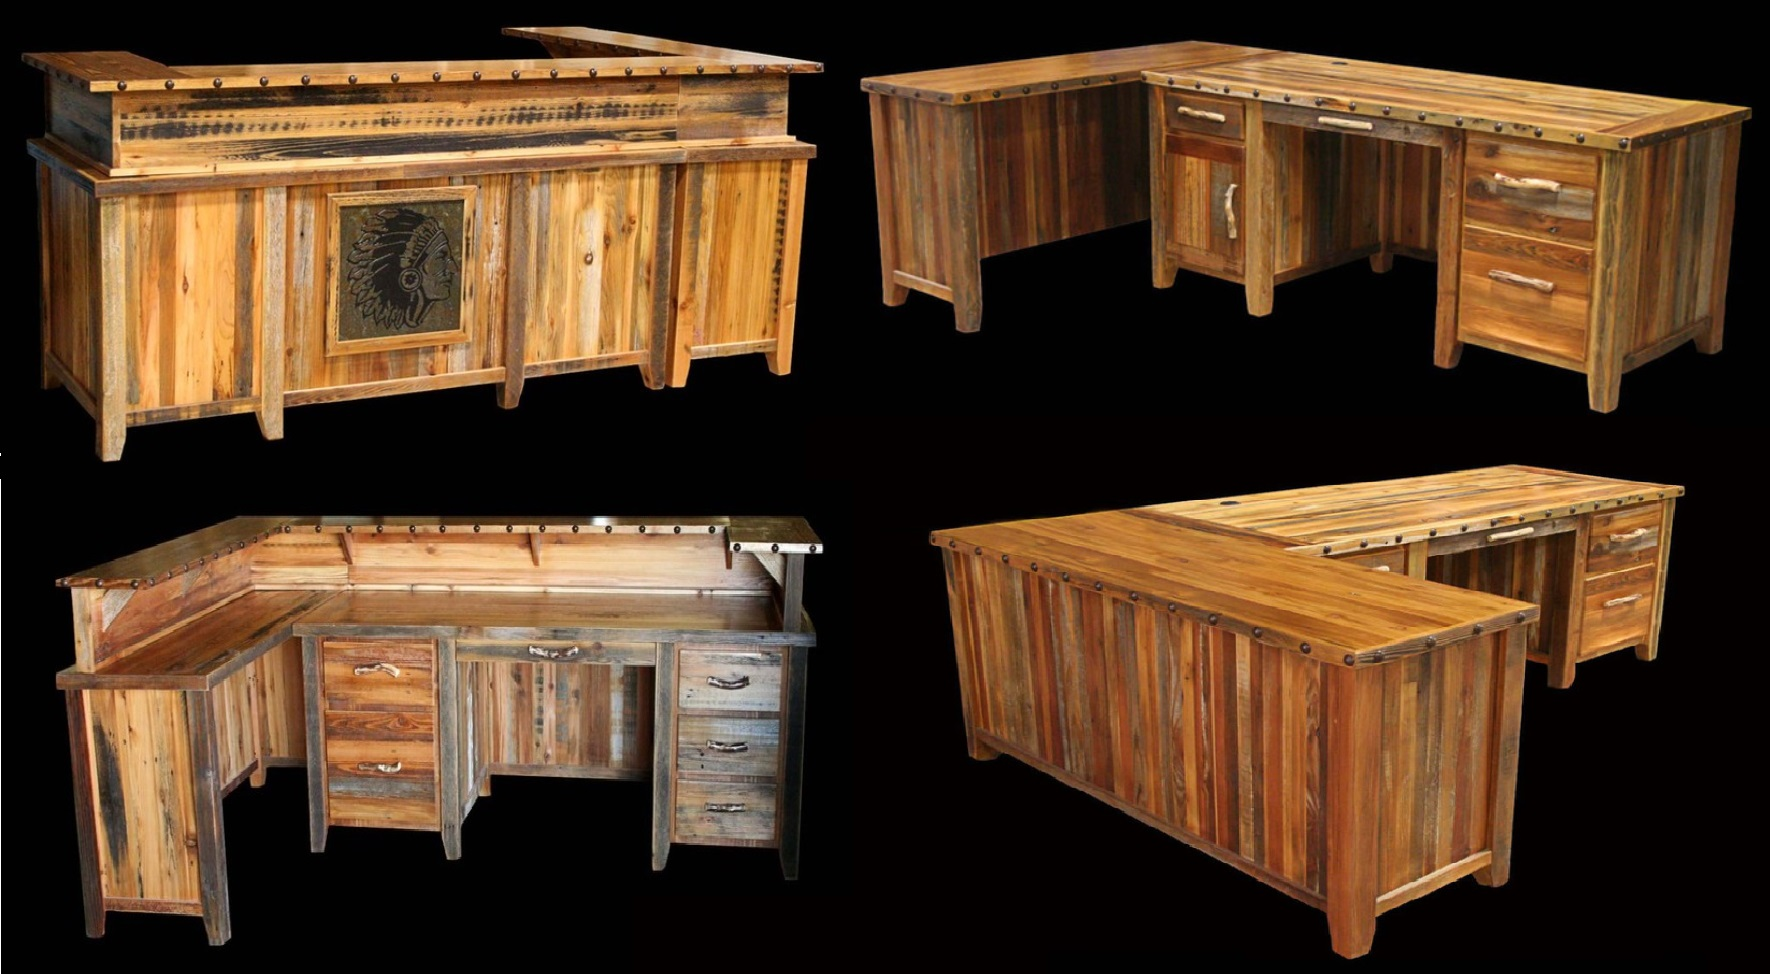 tos woodworking carpentry build know how rustic a desk skills diy to and office